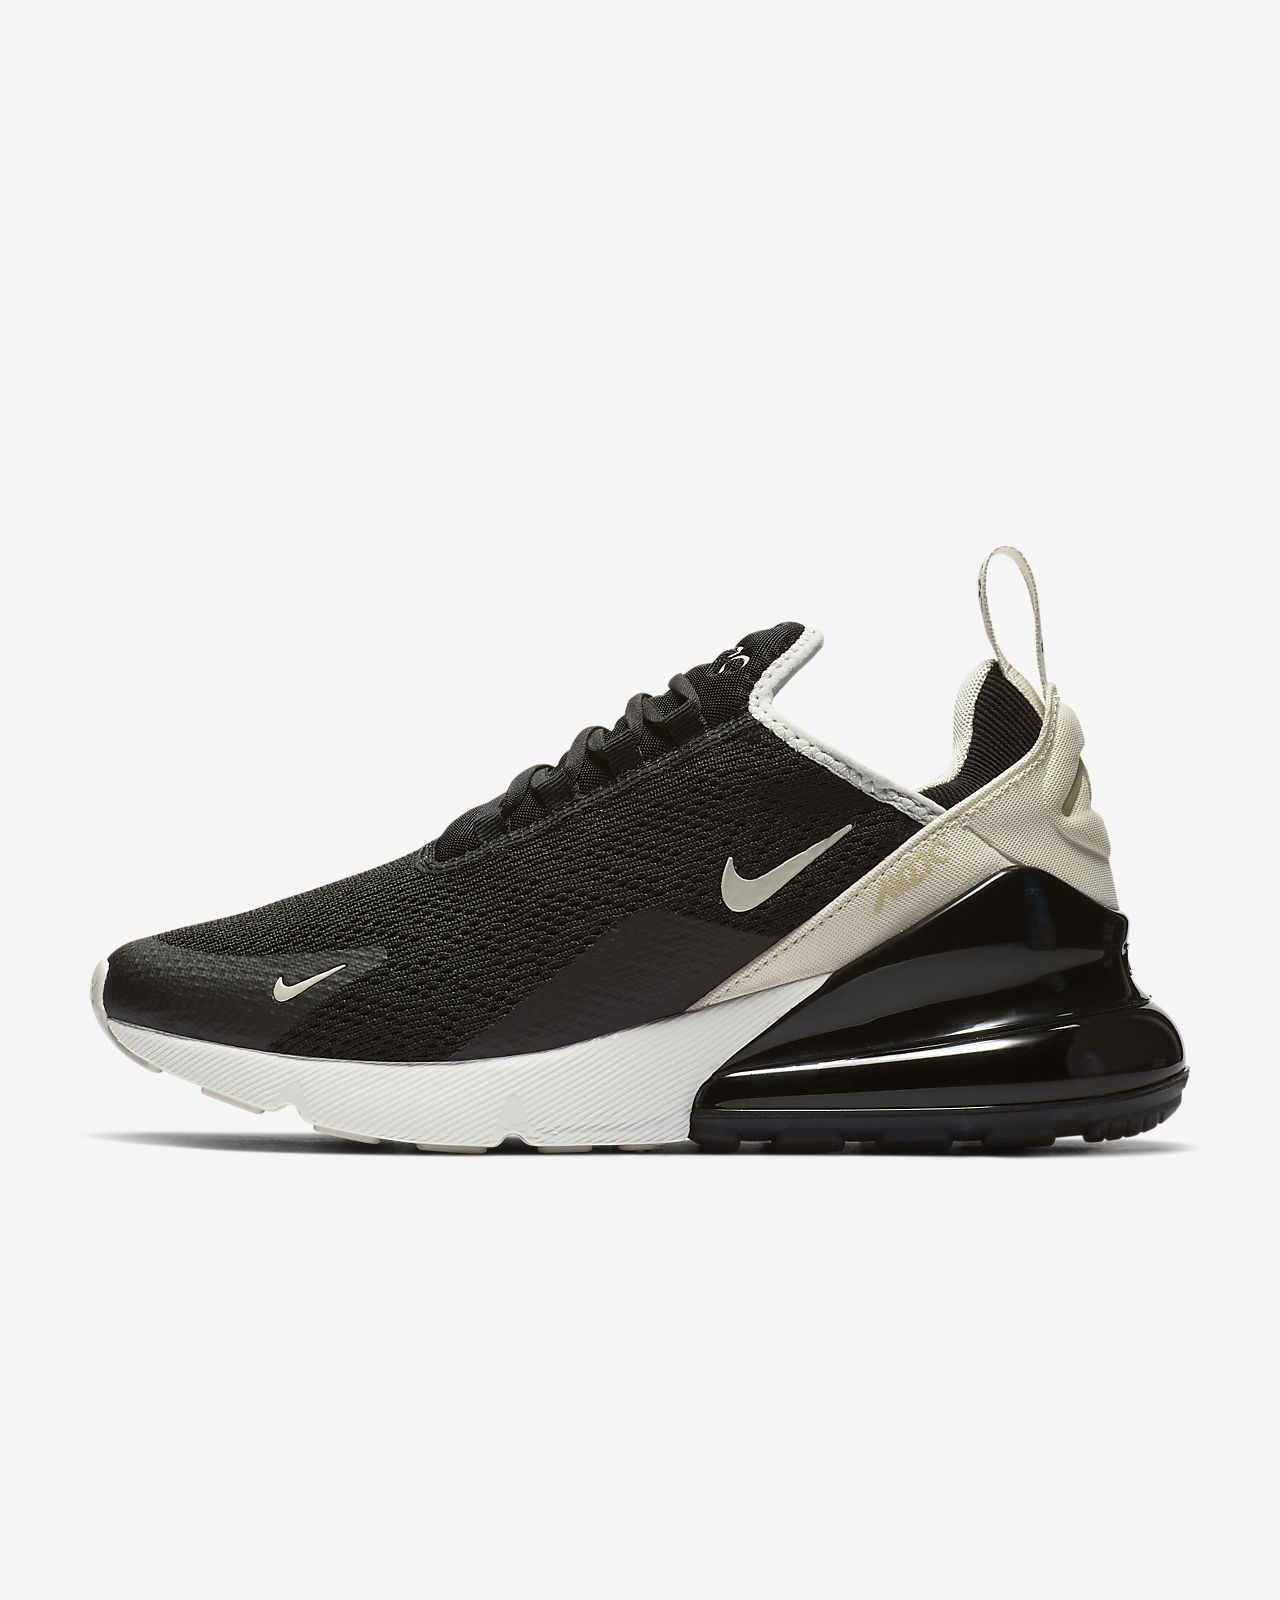 innovative design 3f59a 6dc85 ... Chaussure Nike Air Max 270 pour Femme